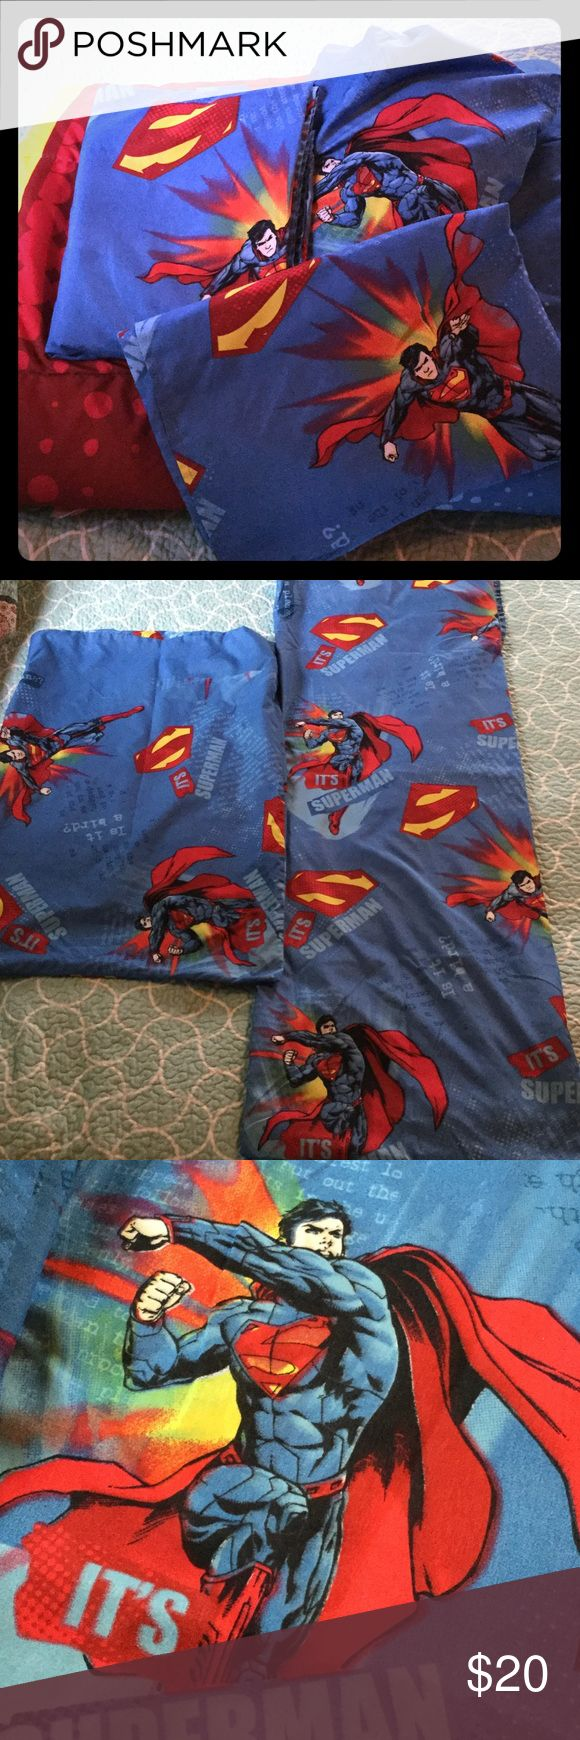 Bed cover my love anak - Superman Bedding Twin